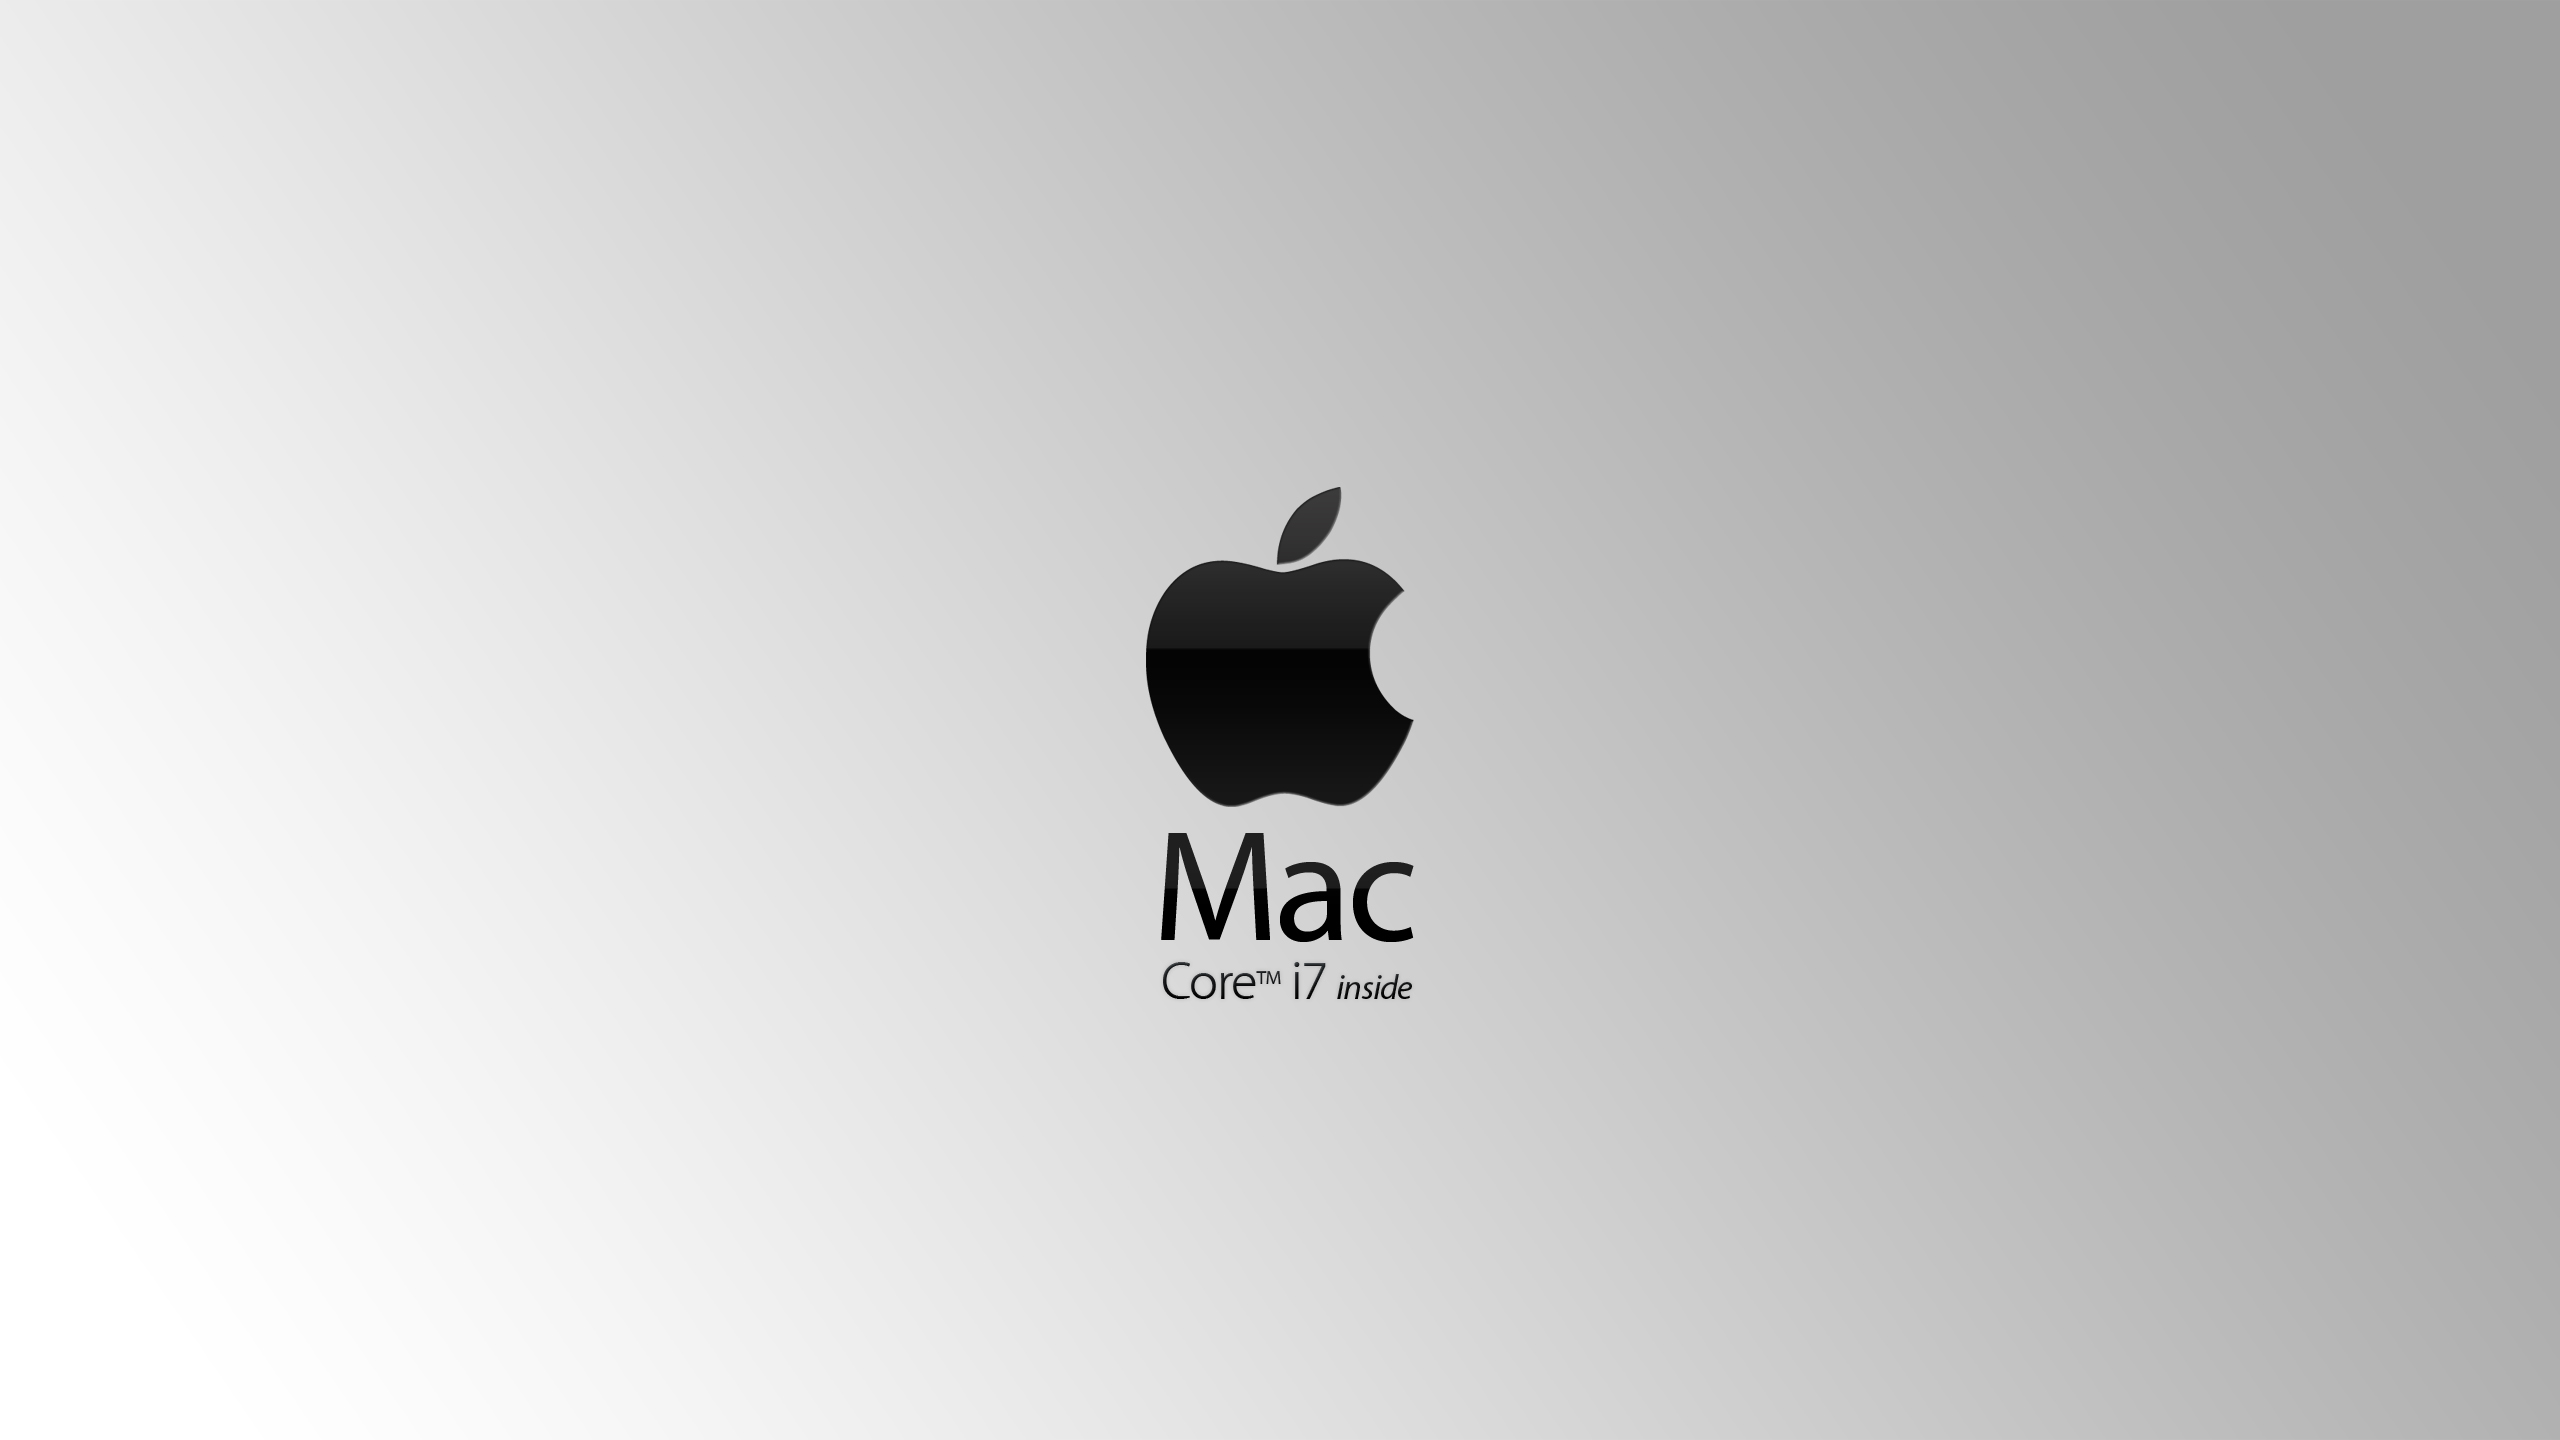 macbook air wallpaper quotes